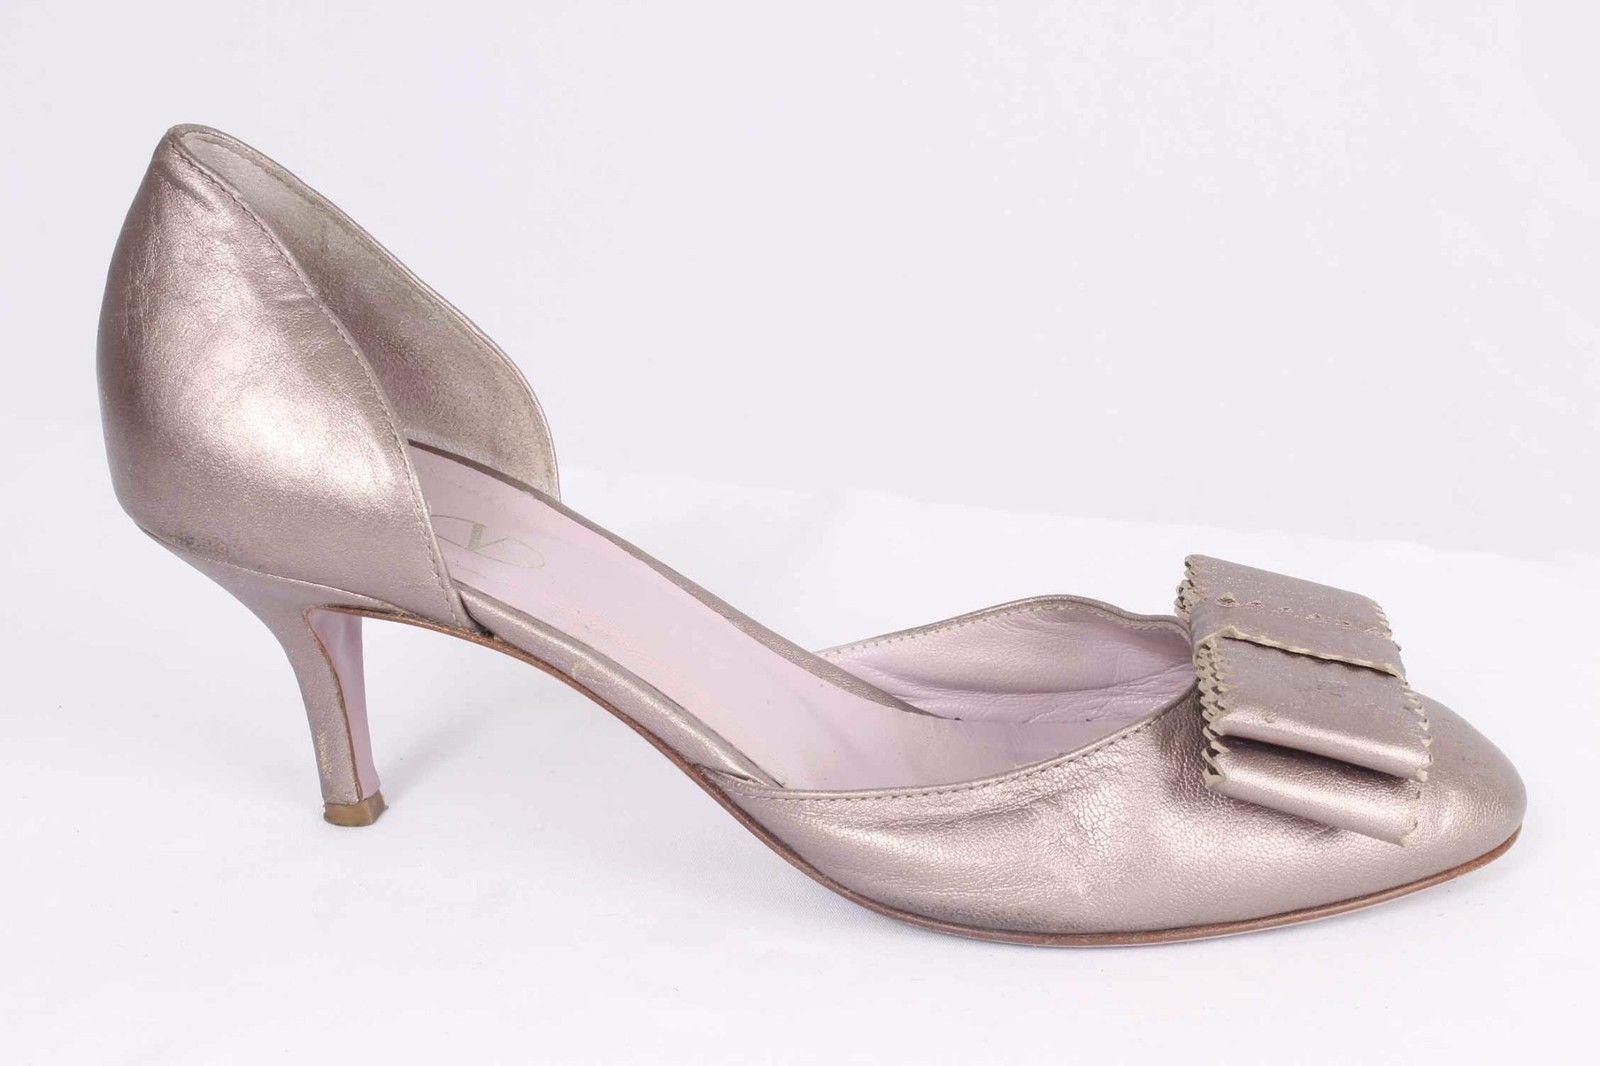 ROT Valentino Größe 8M Pale Metallic Pink Bow Embellished d'Orsay Pumps 896 S101C